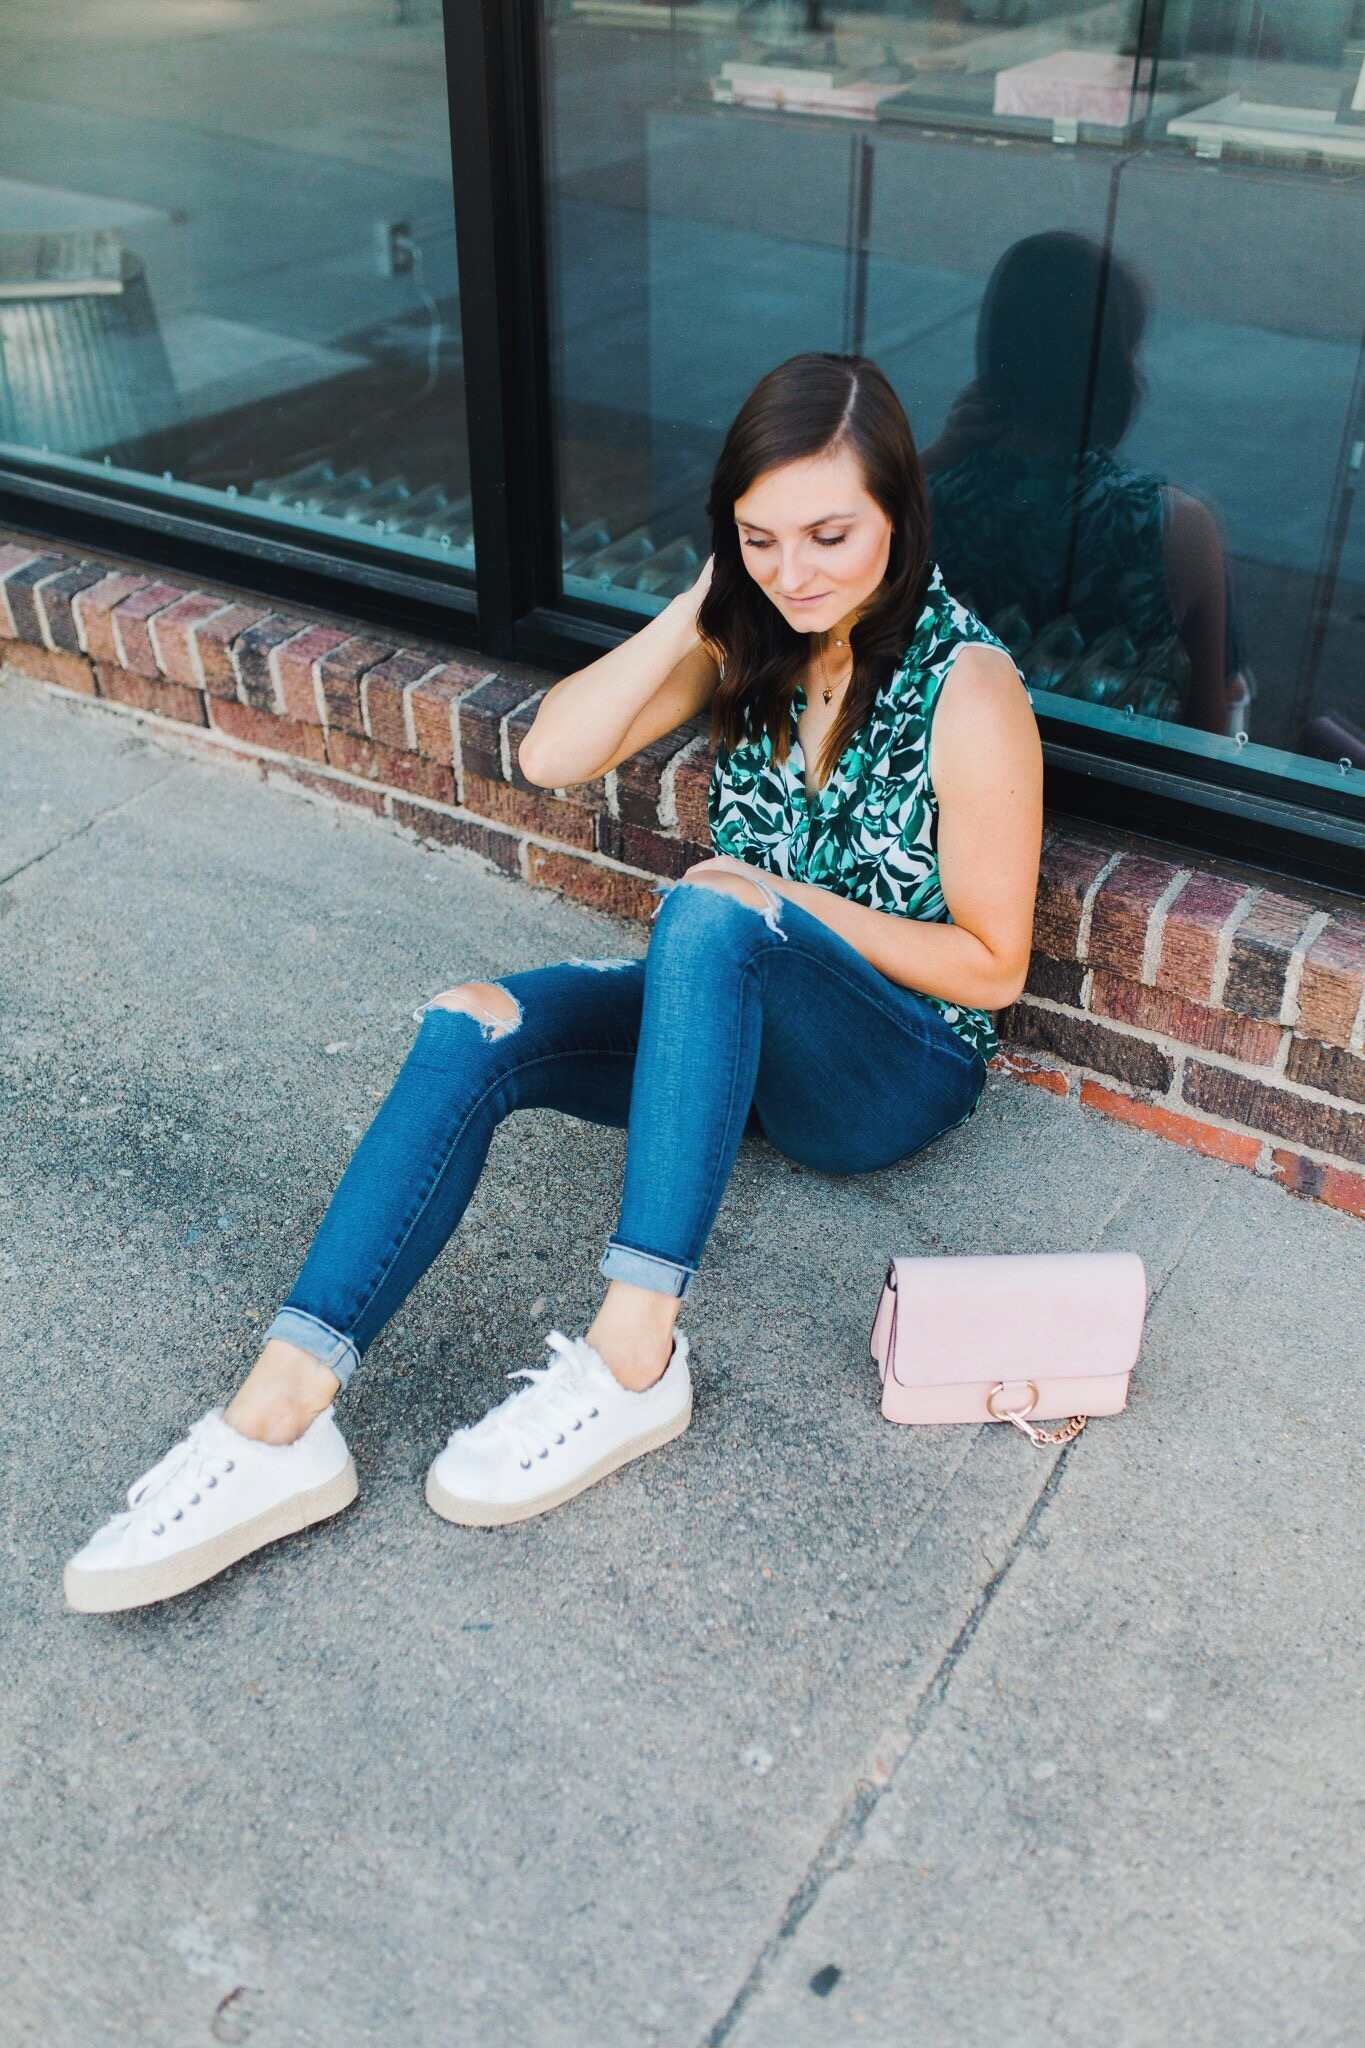 """<img src =five-summer-pieces-to-have-in-your-closet.jpg"""" alt =""""fashion-blogger-sitting-on-the-ground-wearing-ag-adriano-goldschmied-11 year-swapmeet-skinny-jeans- with-a bold-patterned-tank-and-platform-espadrille-sneakers-talking-summer-essentials-you-need-in-your-closet"""">"""